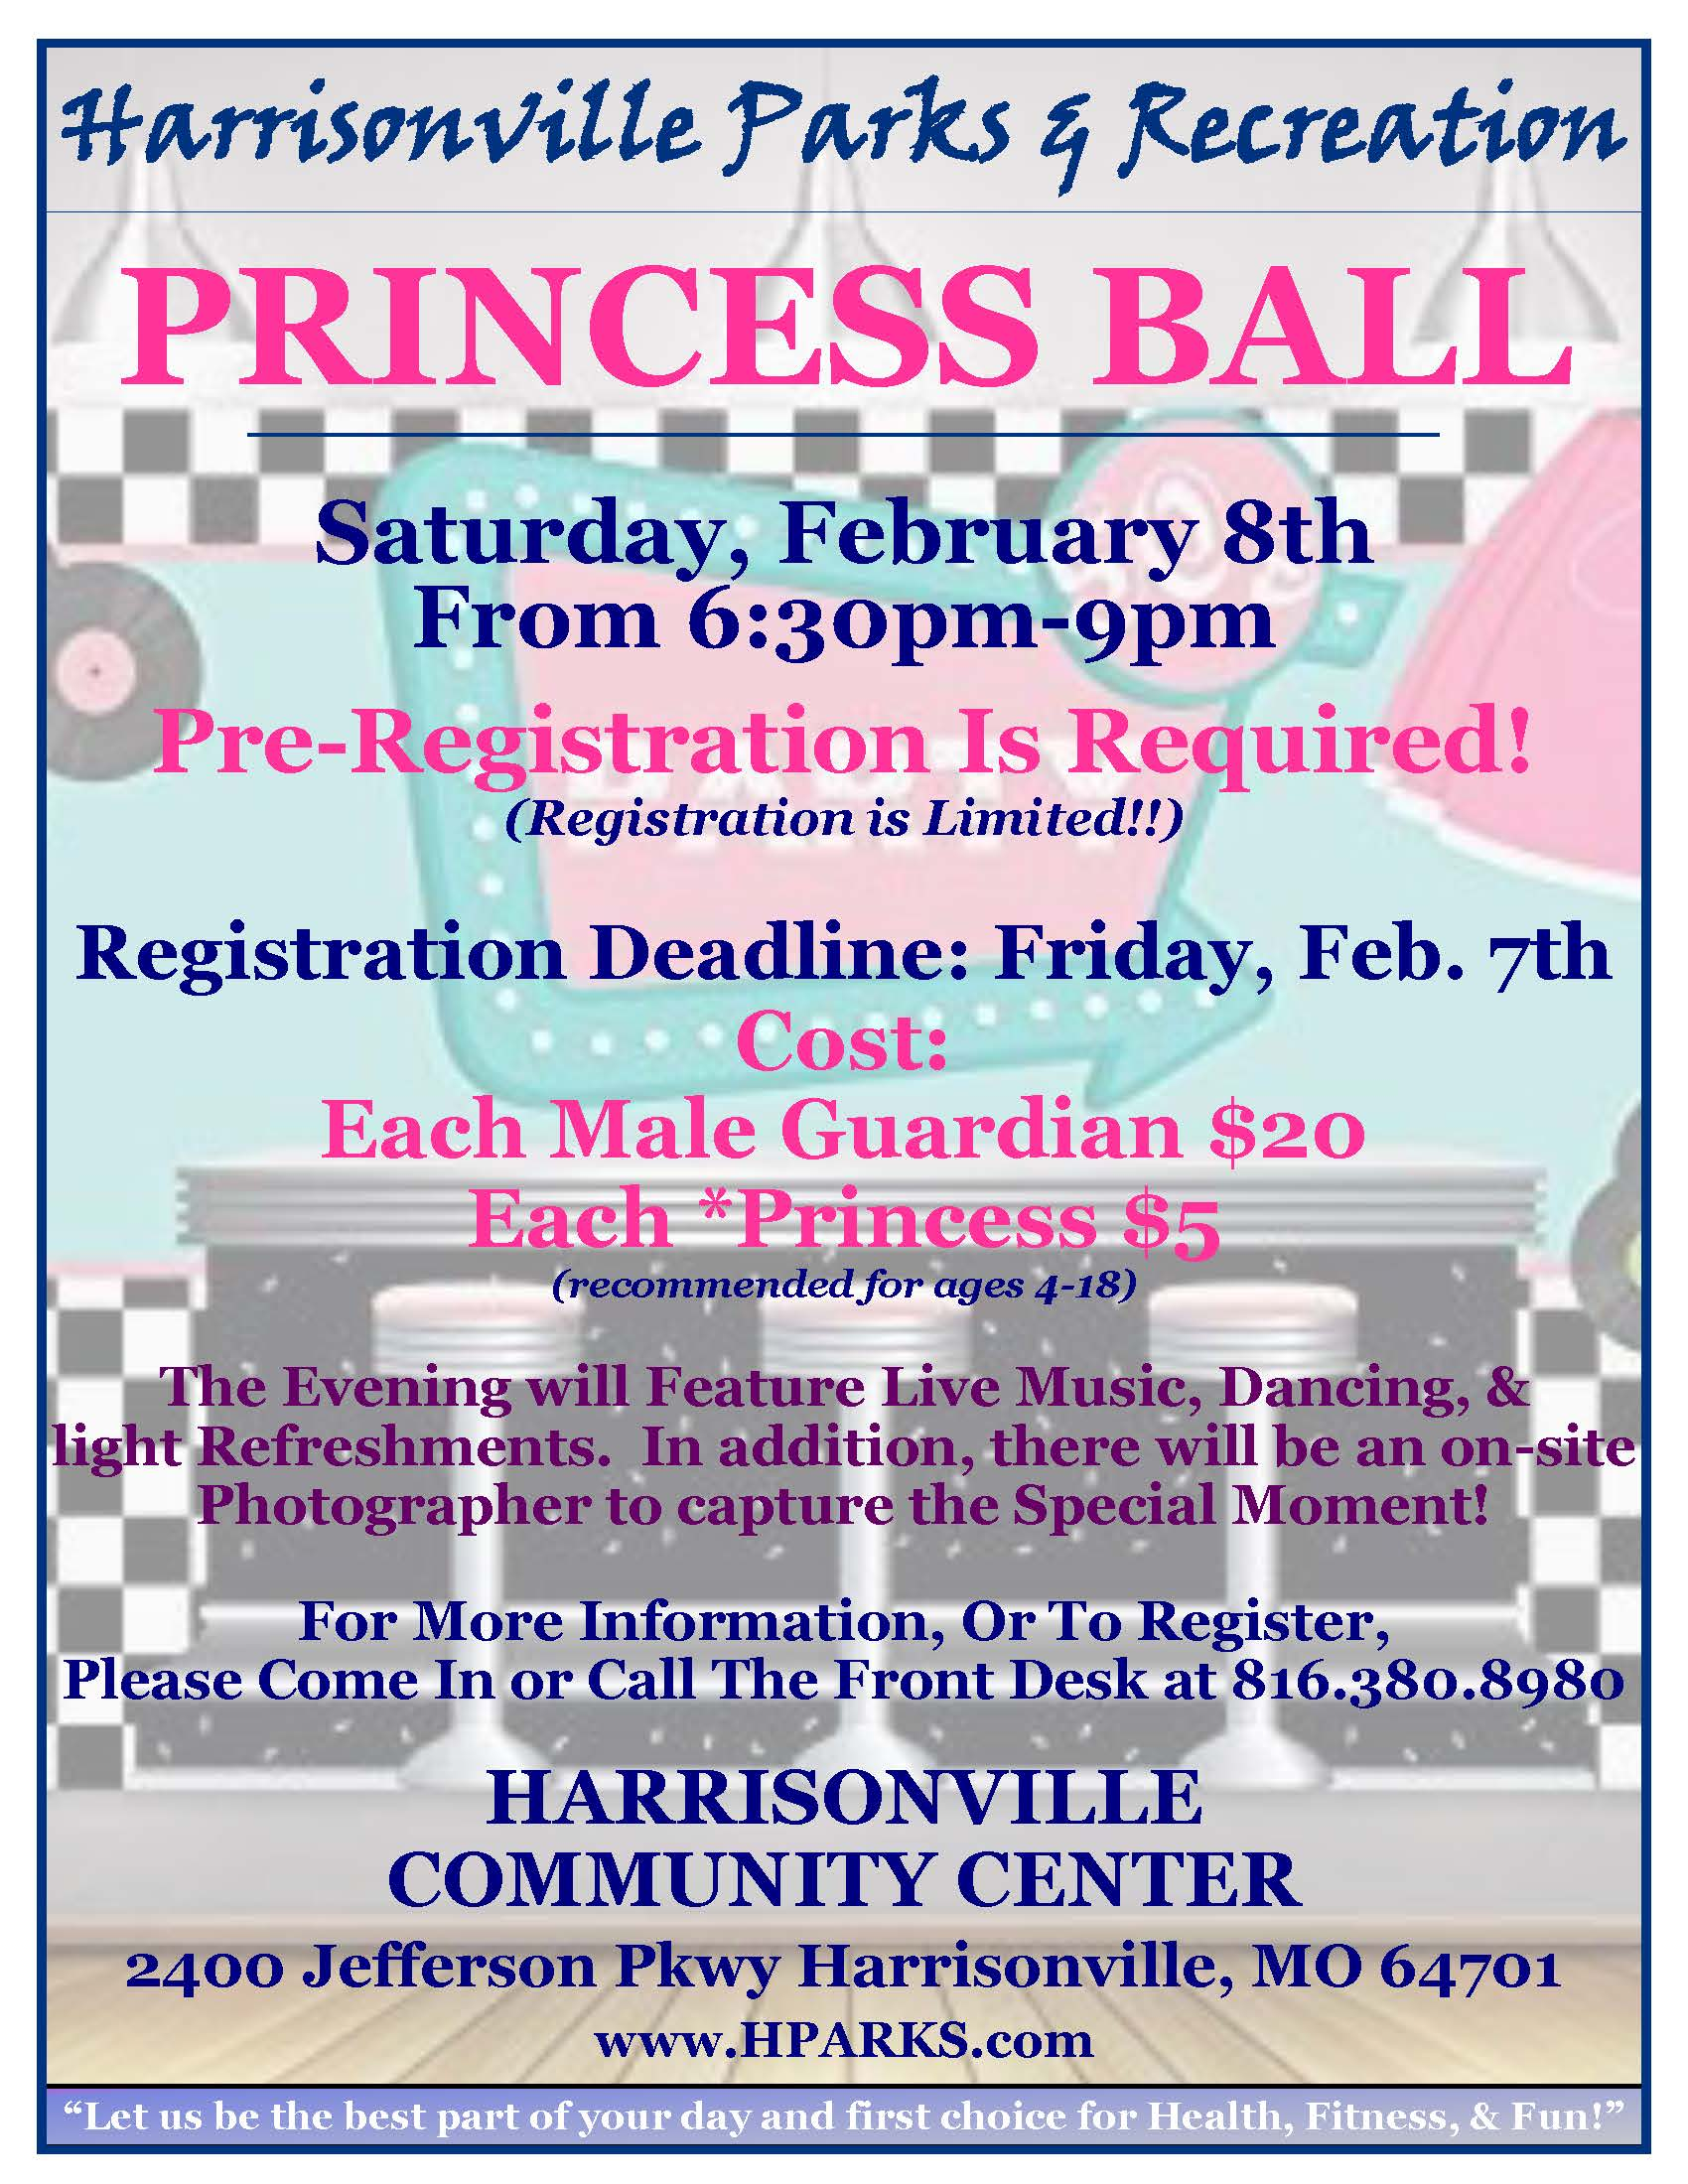 Princess Ball Flyer 2020